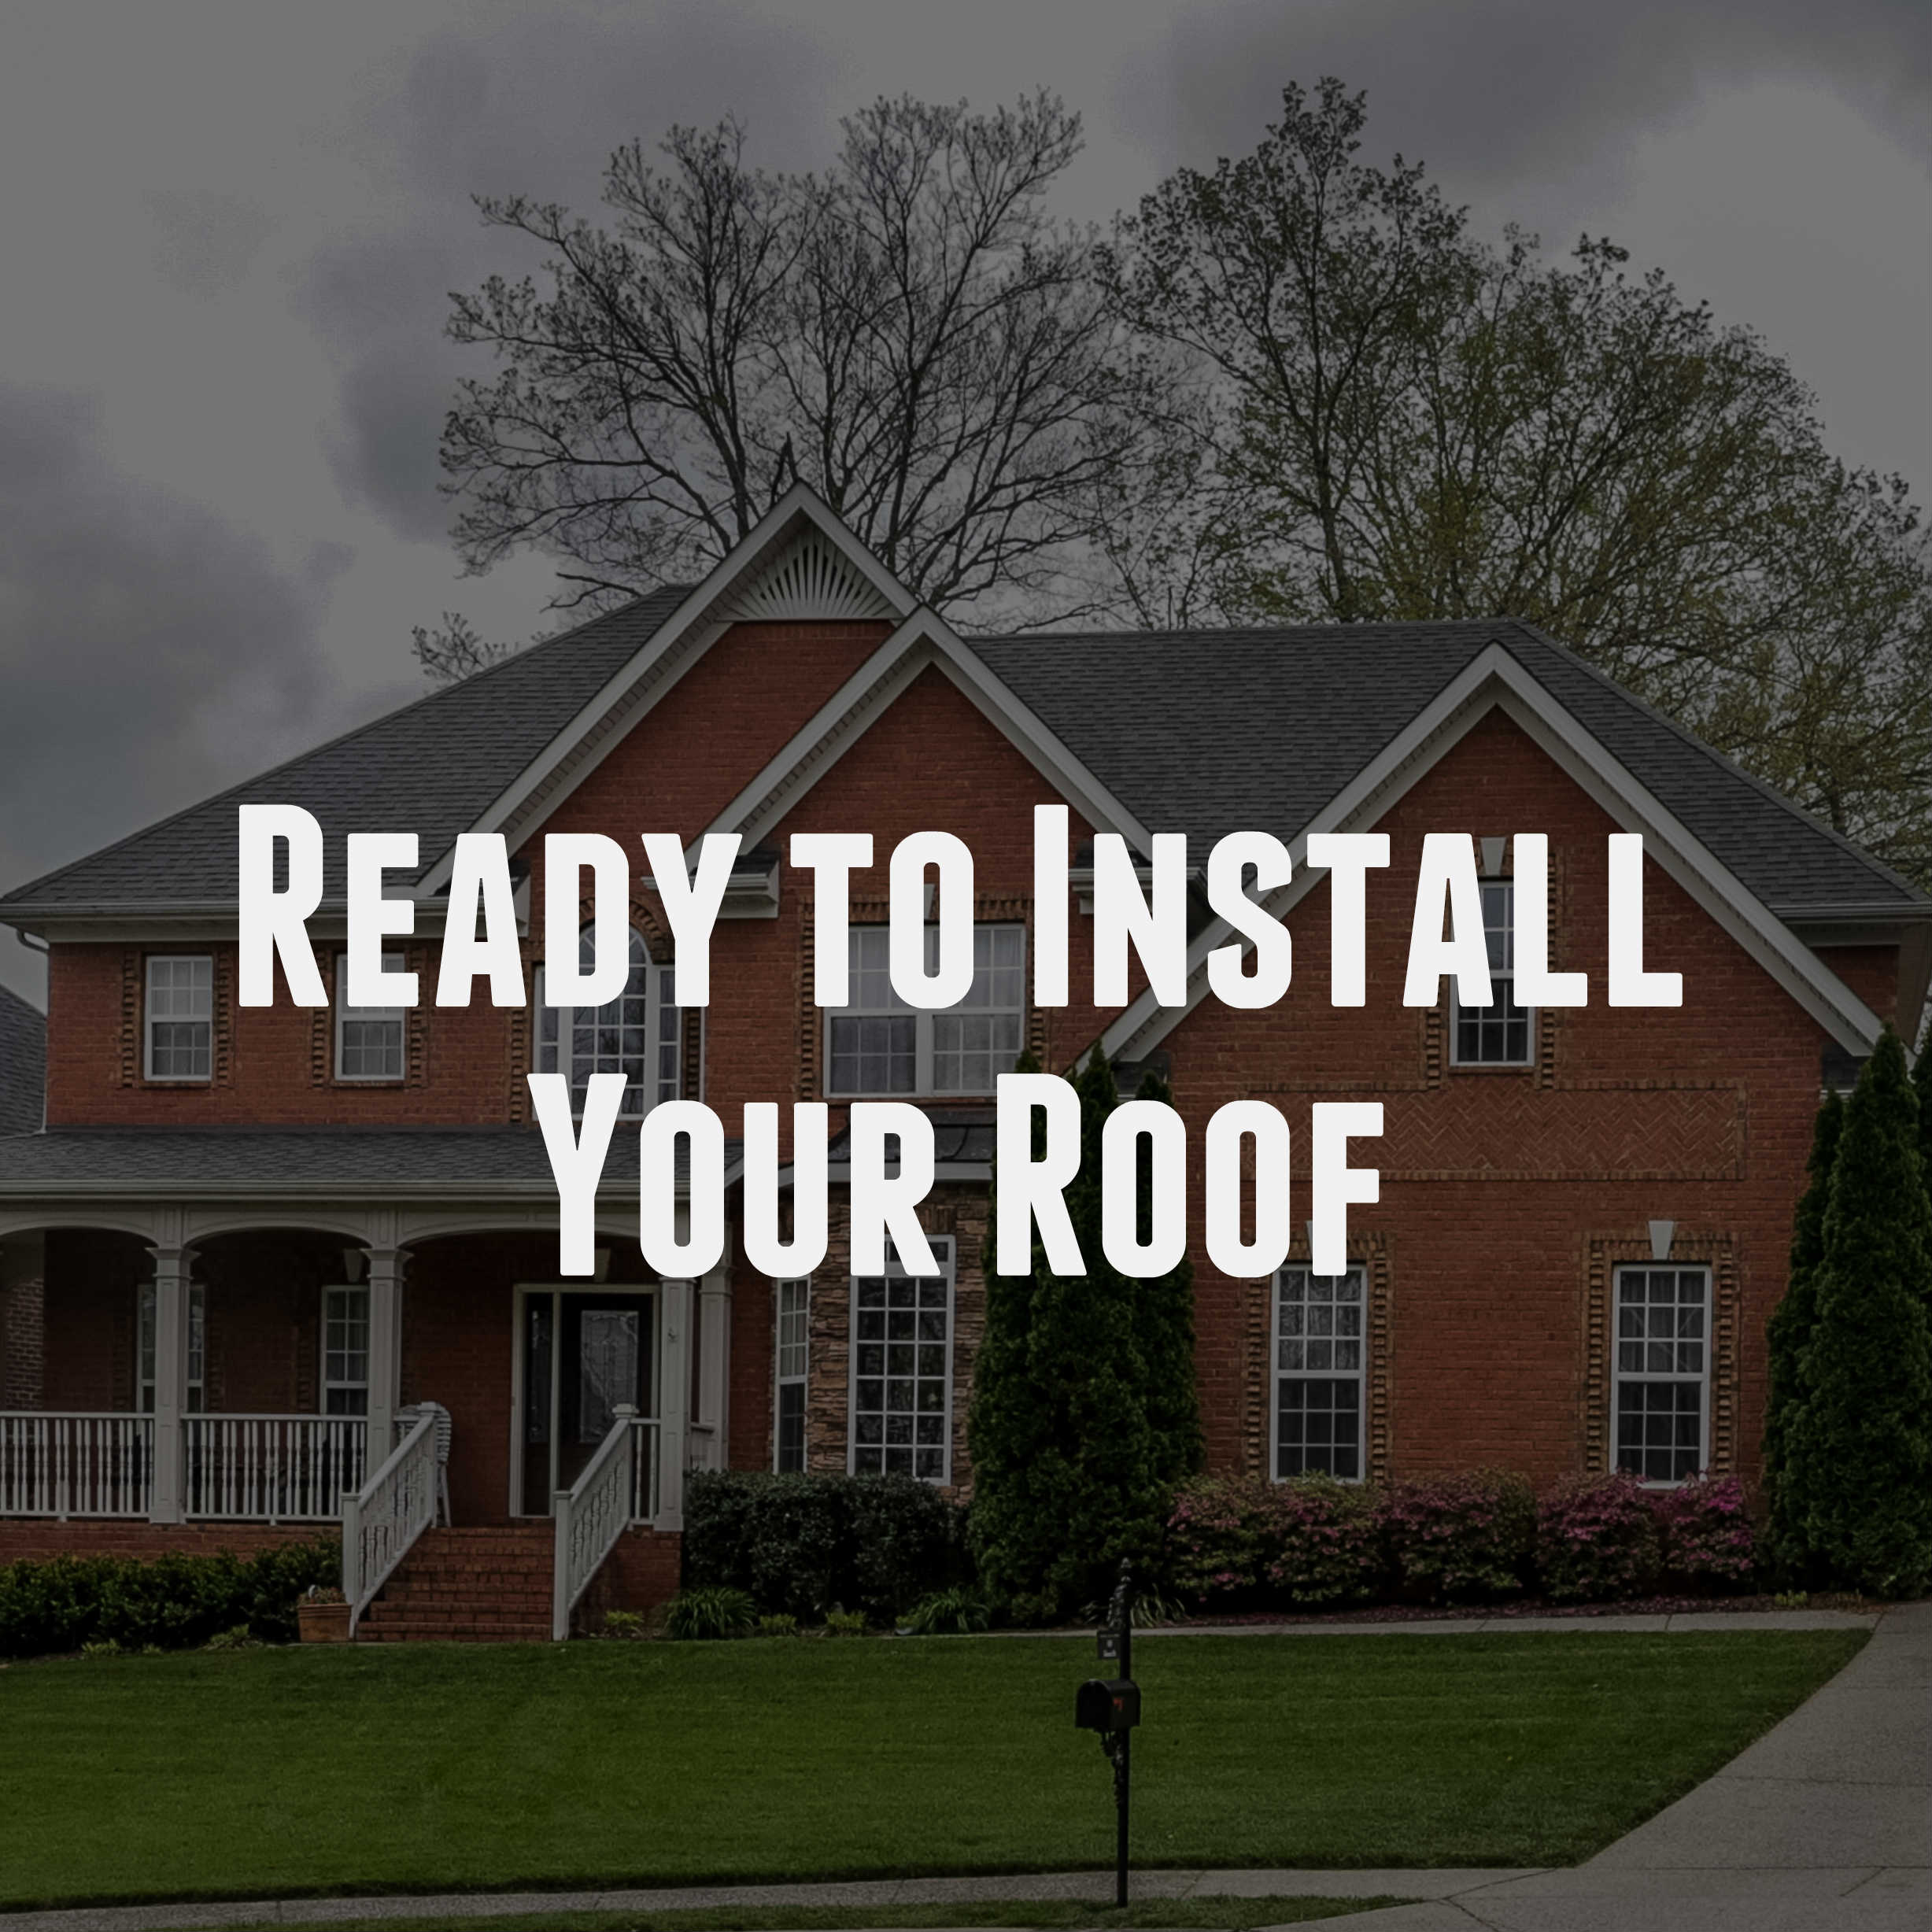 Ready to Install Your Roof